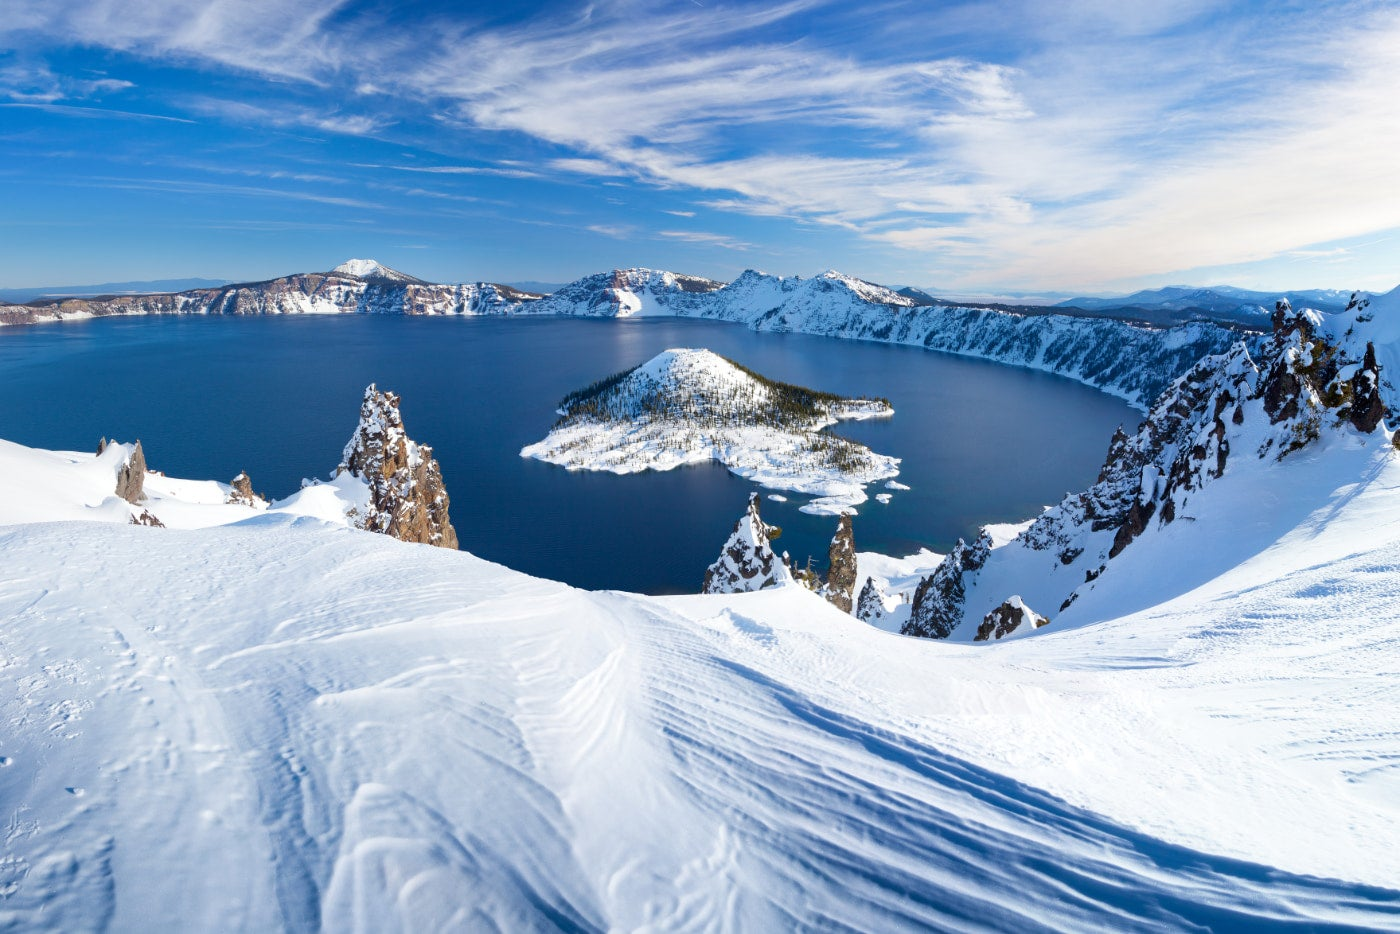 crater lake in december crater lake december crater lake weather december crater lake national park in december crater lake weather in december crater lake december weather visiting crater lake in december